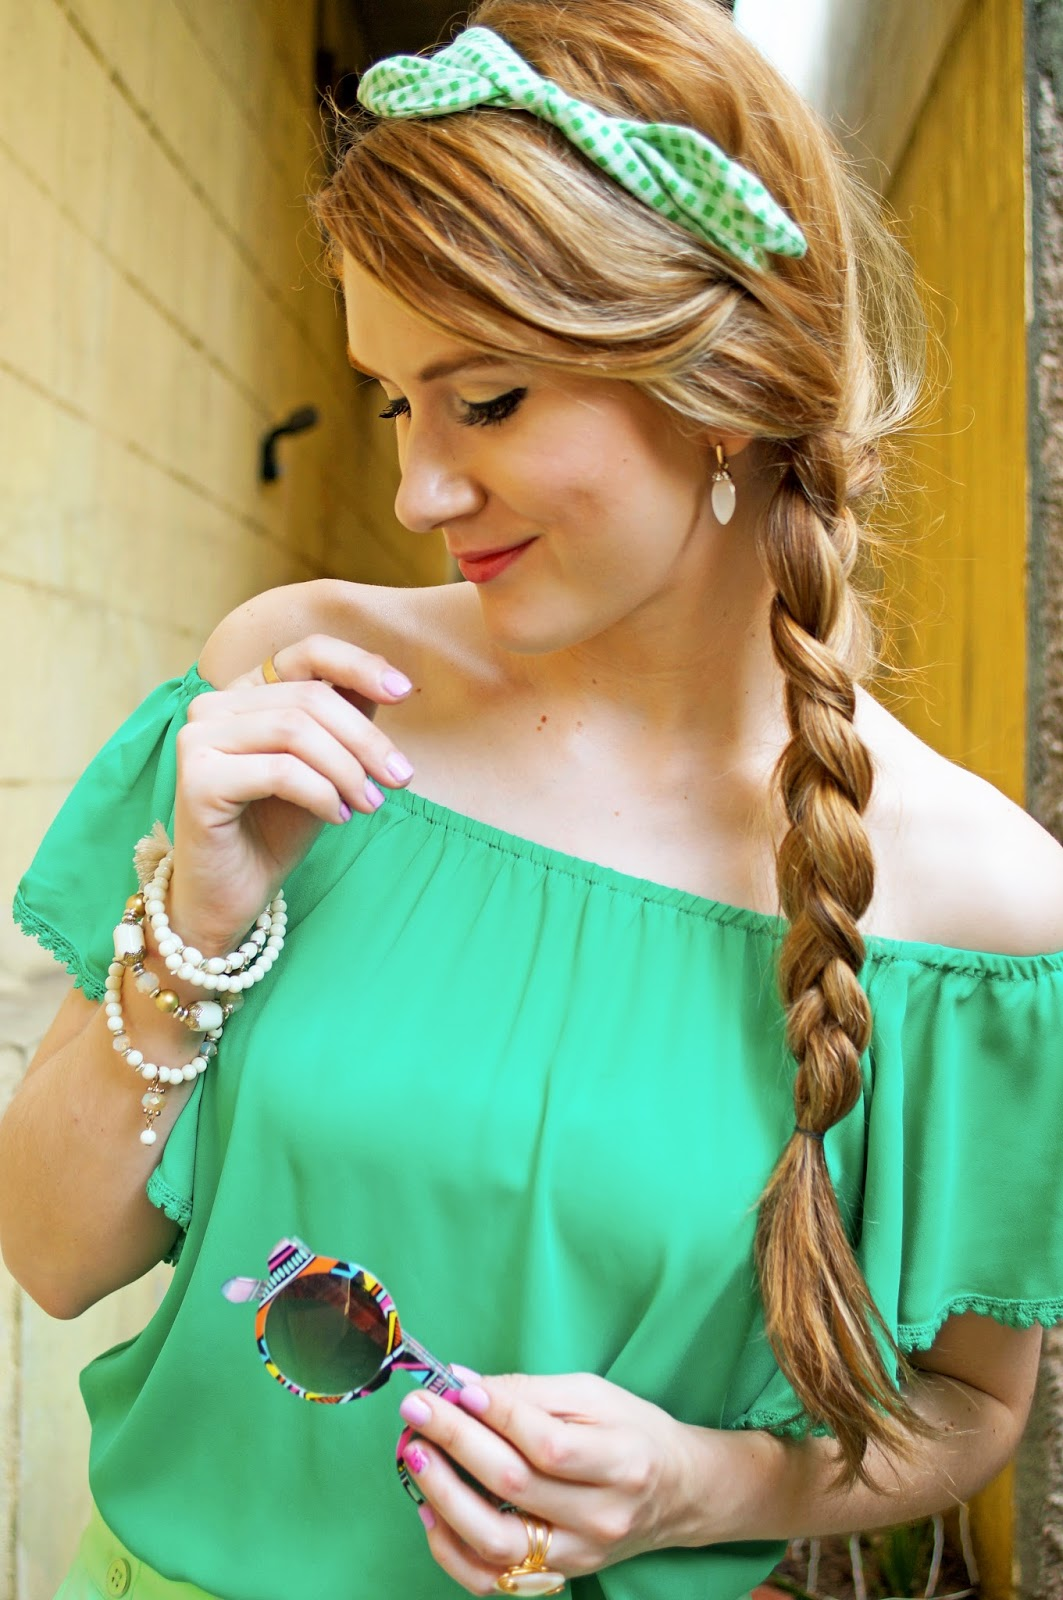 Cute Summer Braid Hairstyle